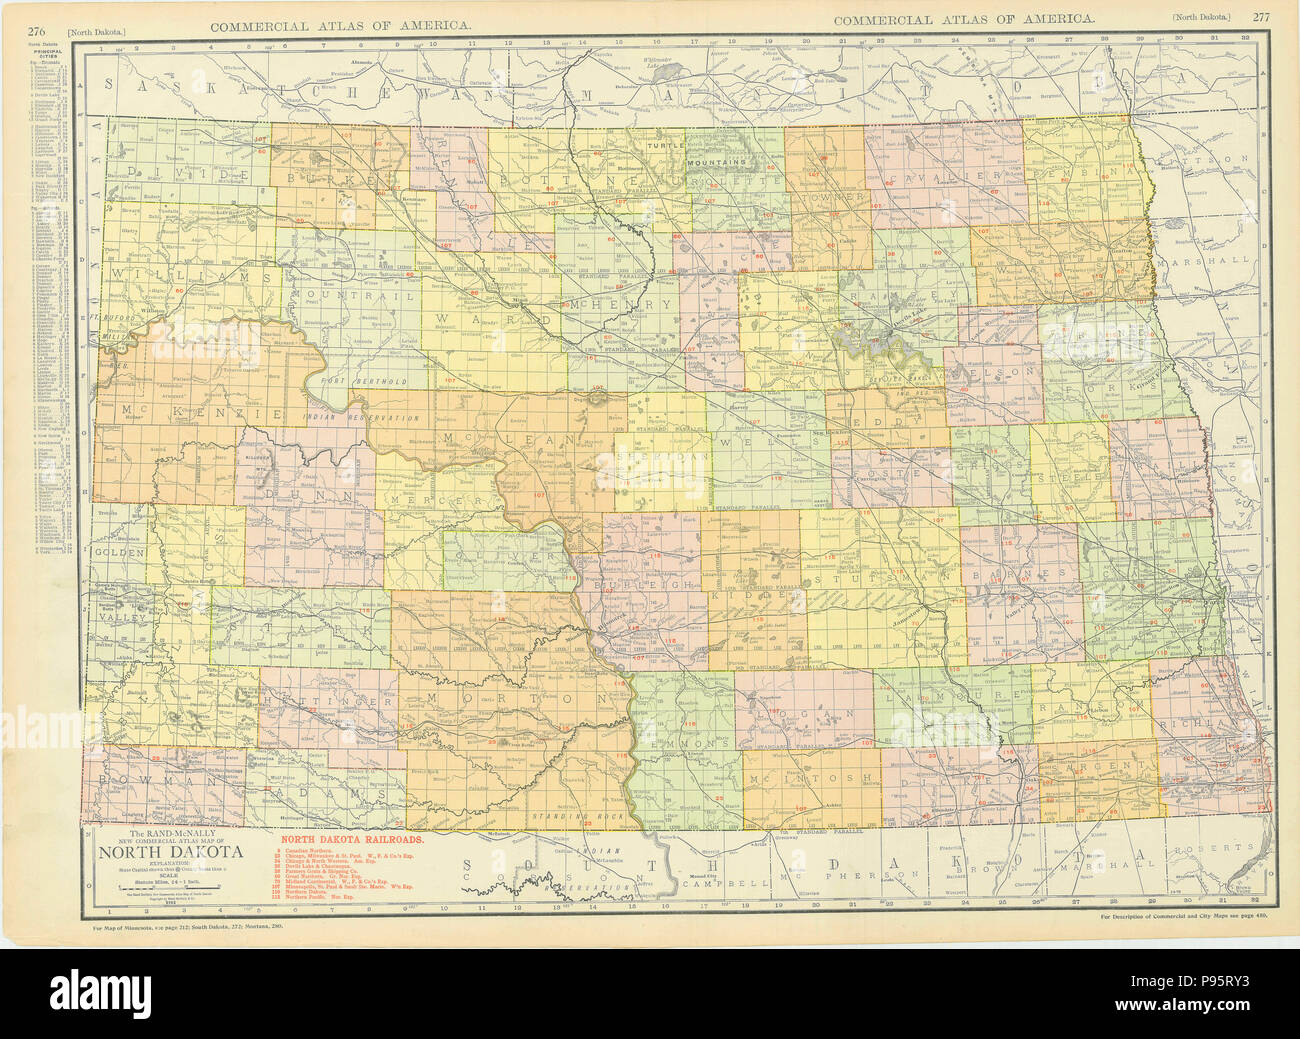 North Dakota 1913 Map Stock Photo: 212184871 - Alamy